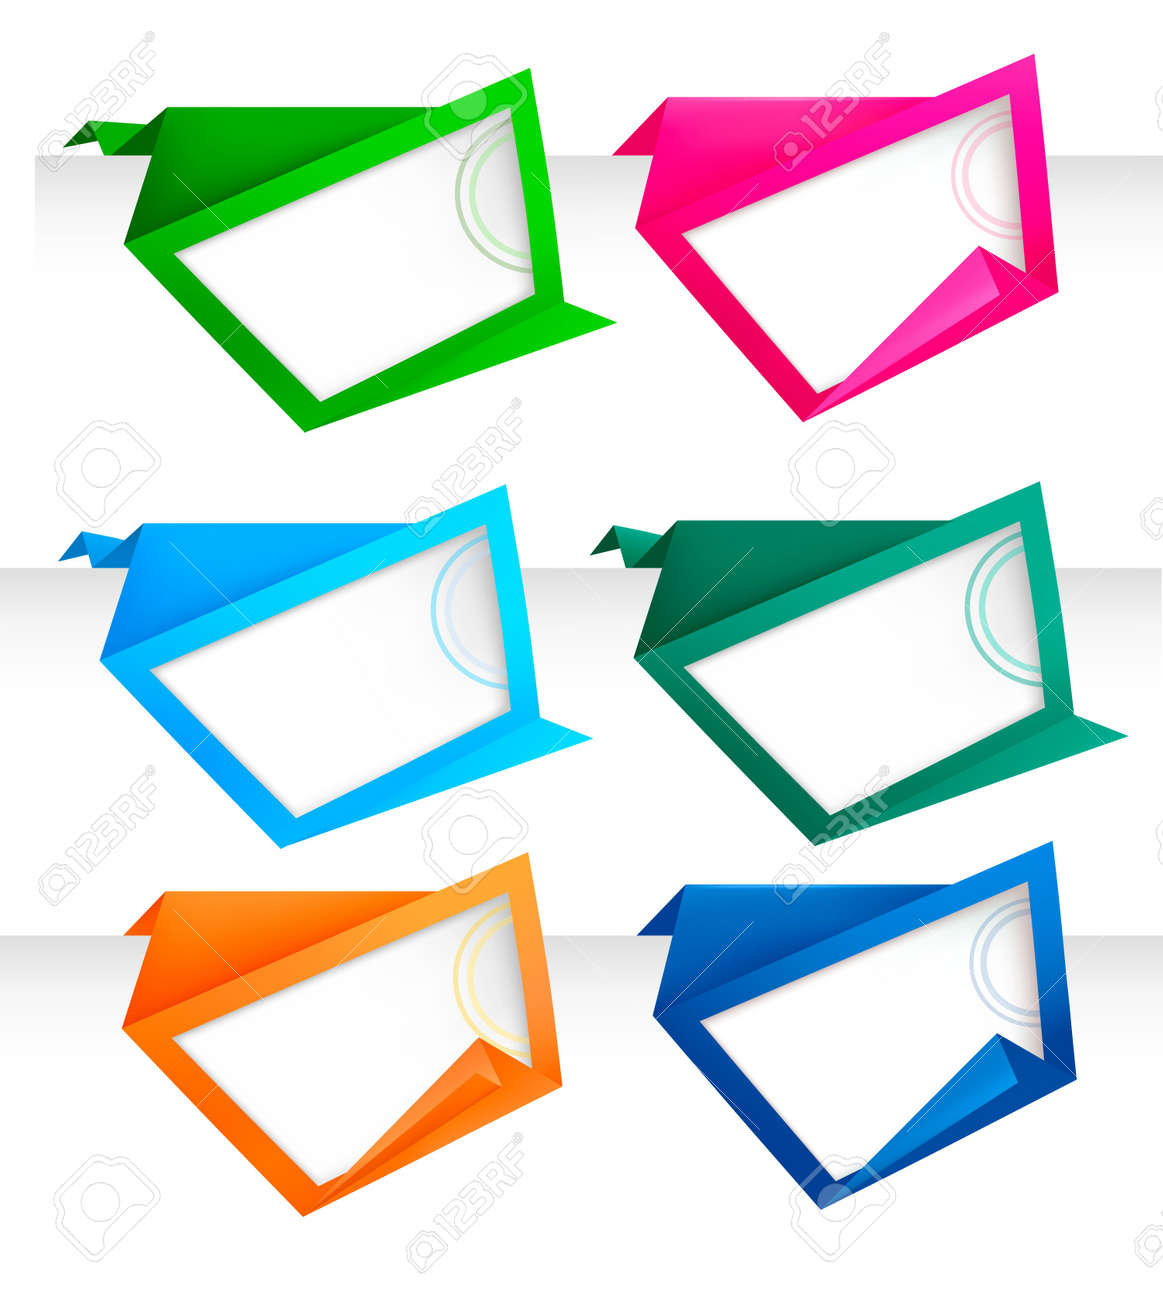 Set of abstract origami paper banners. Vector background. Stock Vector - 9720876